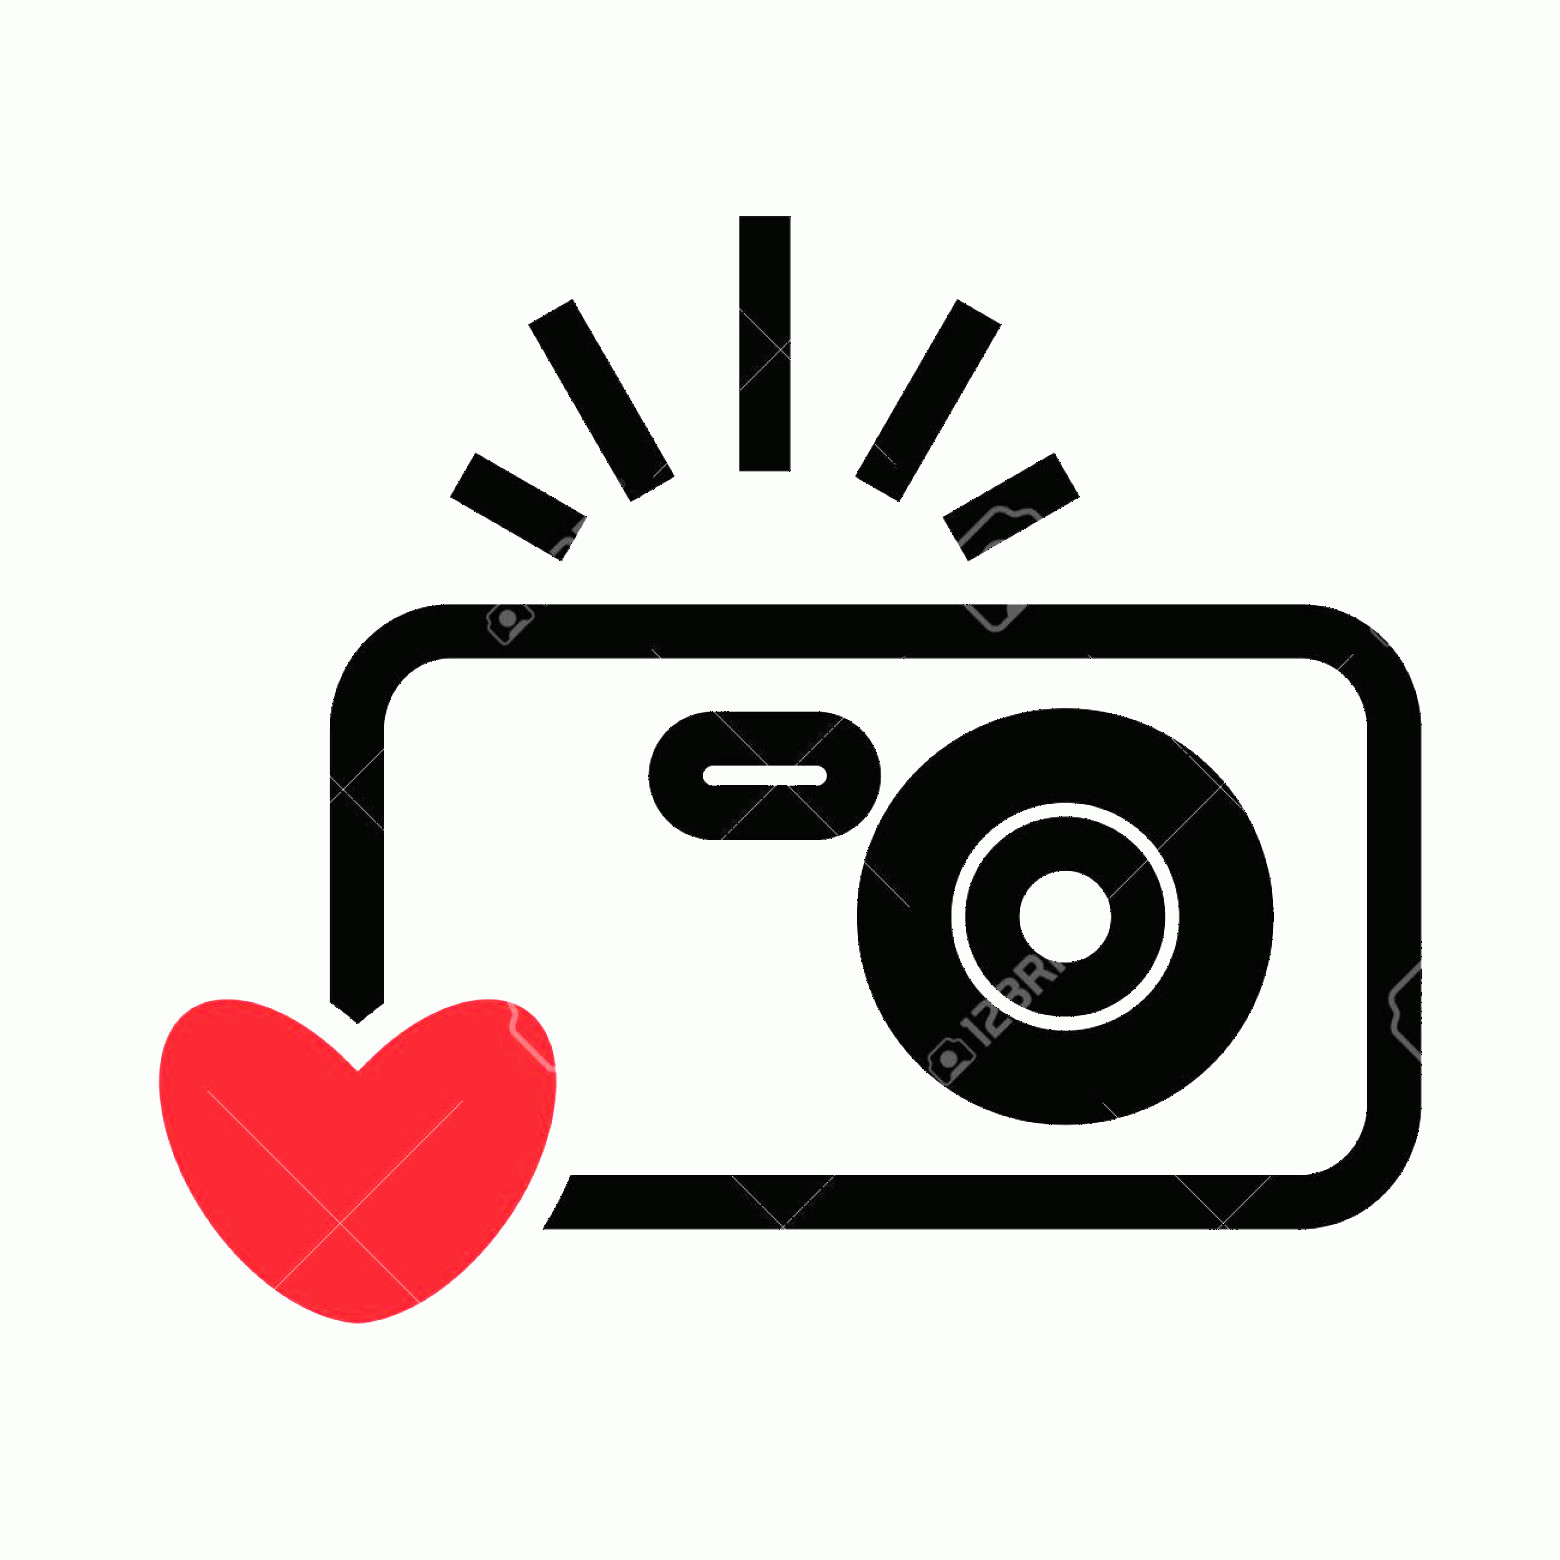 Camera Heart Clip Art Vector: Photostock Vector Digital Camera And Heart Vector Icon Snapshot Photography Sign Or Logo Instant Photo Concept